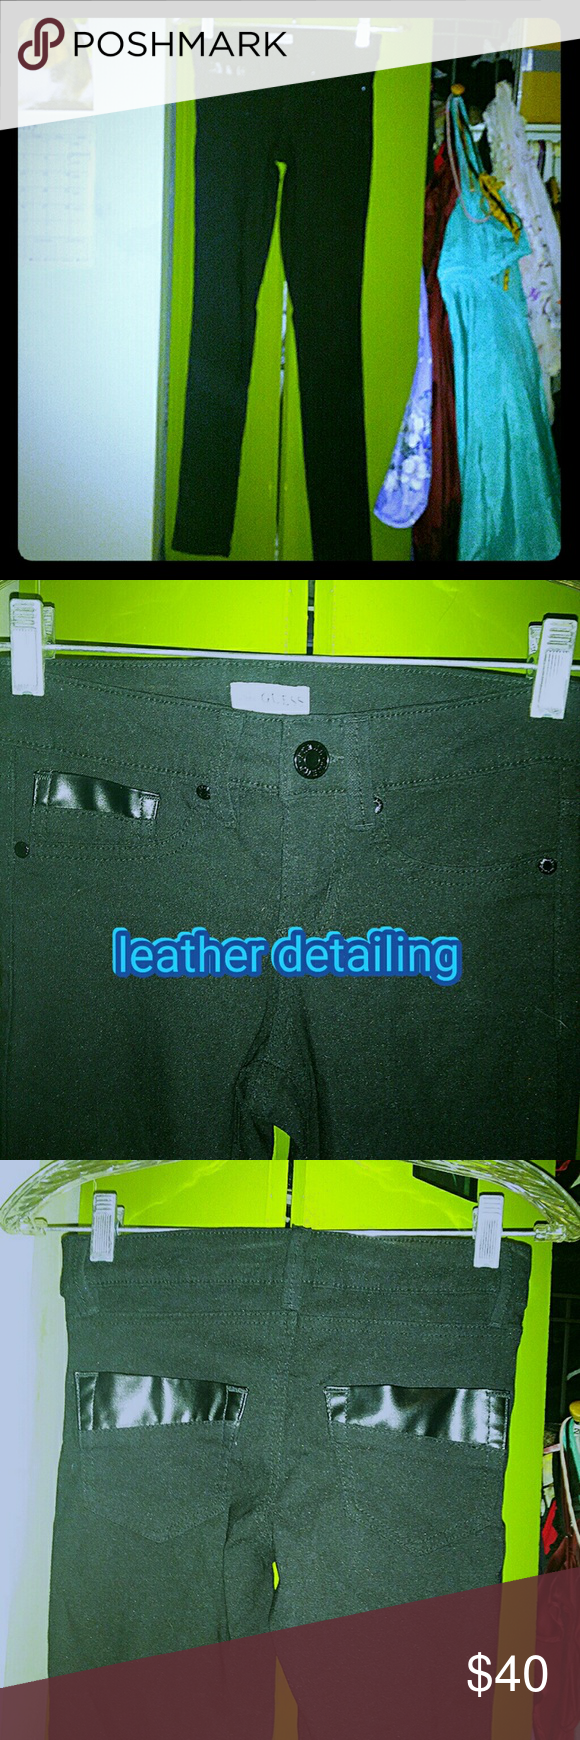 Black skinny pants with leather detail. Guess. Xs Excellent used condition. Black semi stretch skinny fit pants with leather detail on the pockets, front and back. Size xs. Guess Pants Skinny